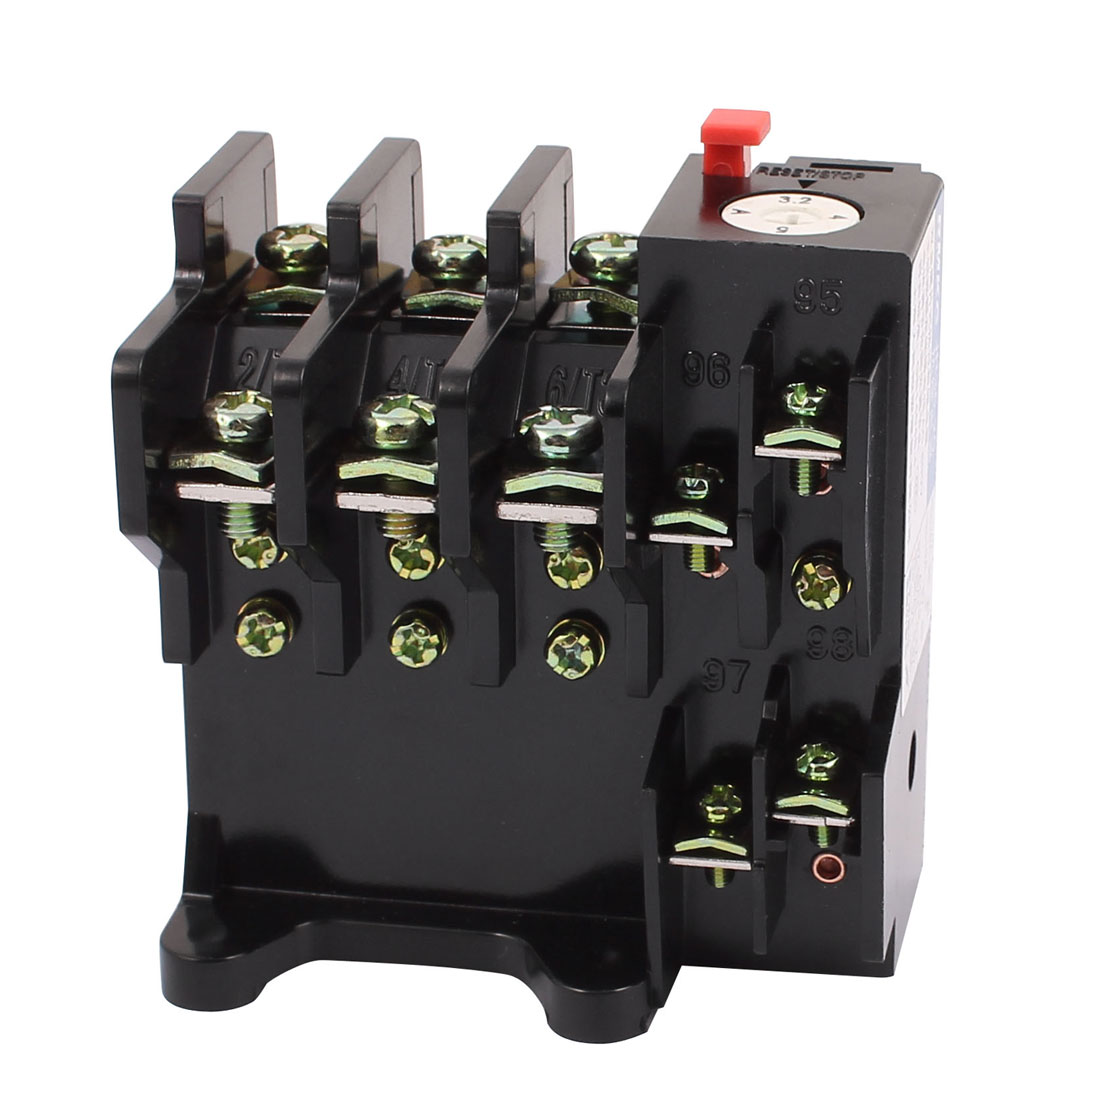 JR36-20 AC 690V 3.2-5A Three Phase Motor Protector Thermal Overload Relay